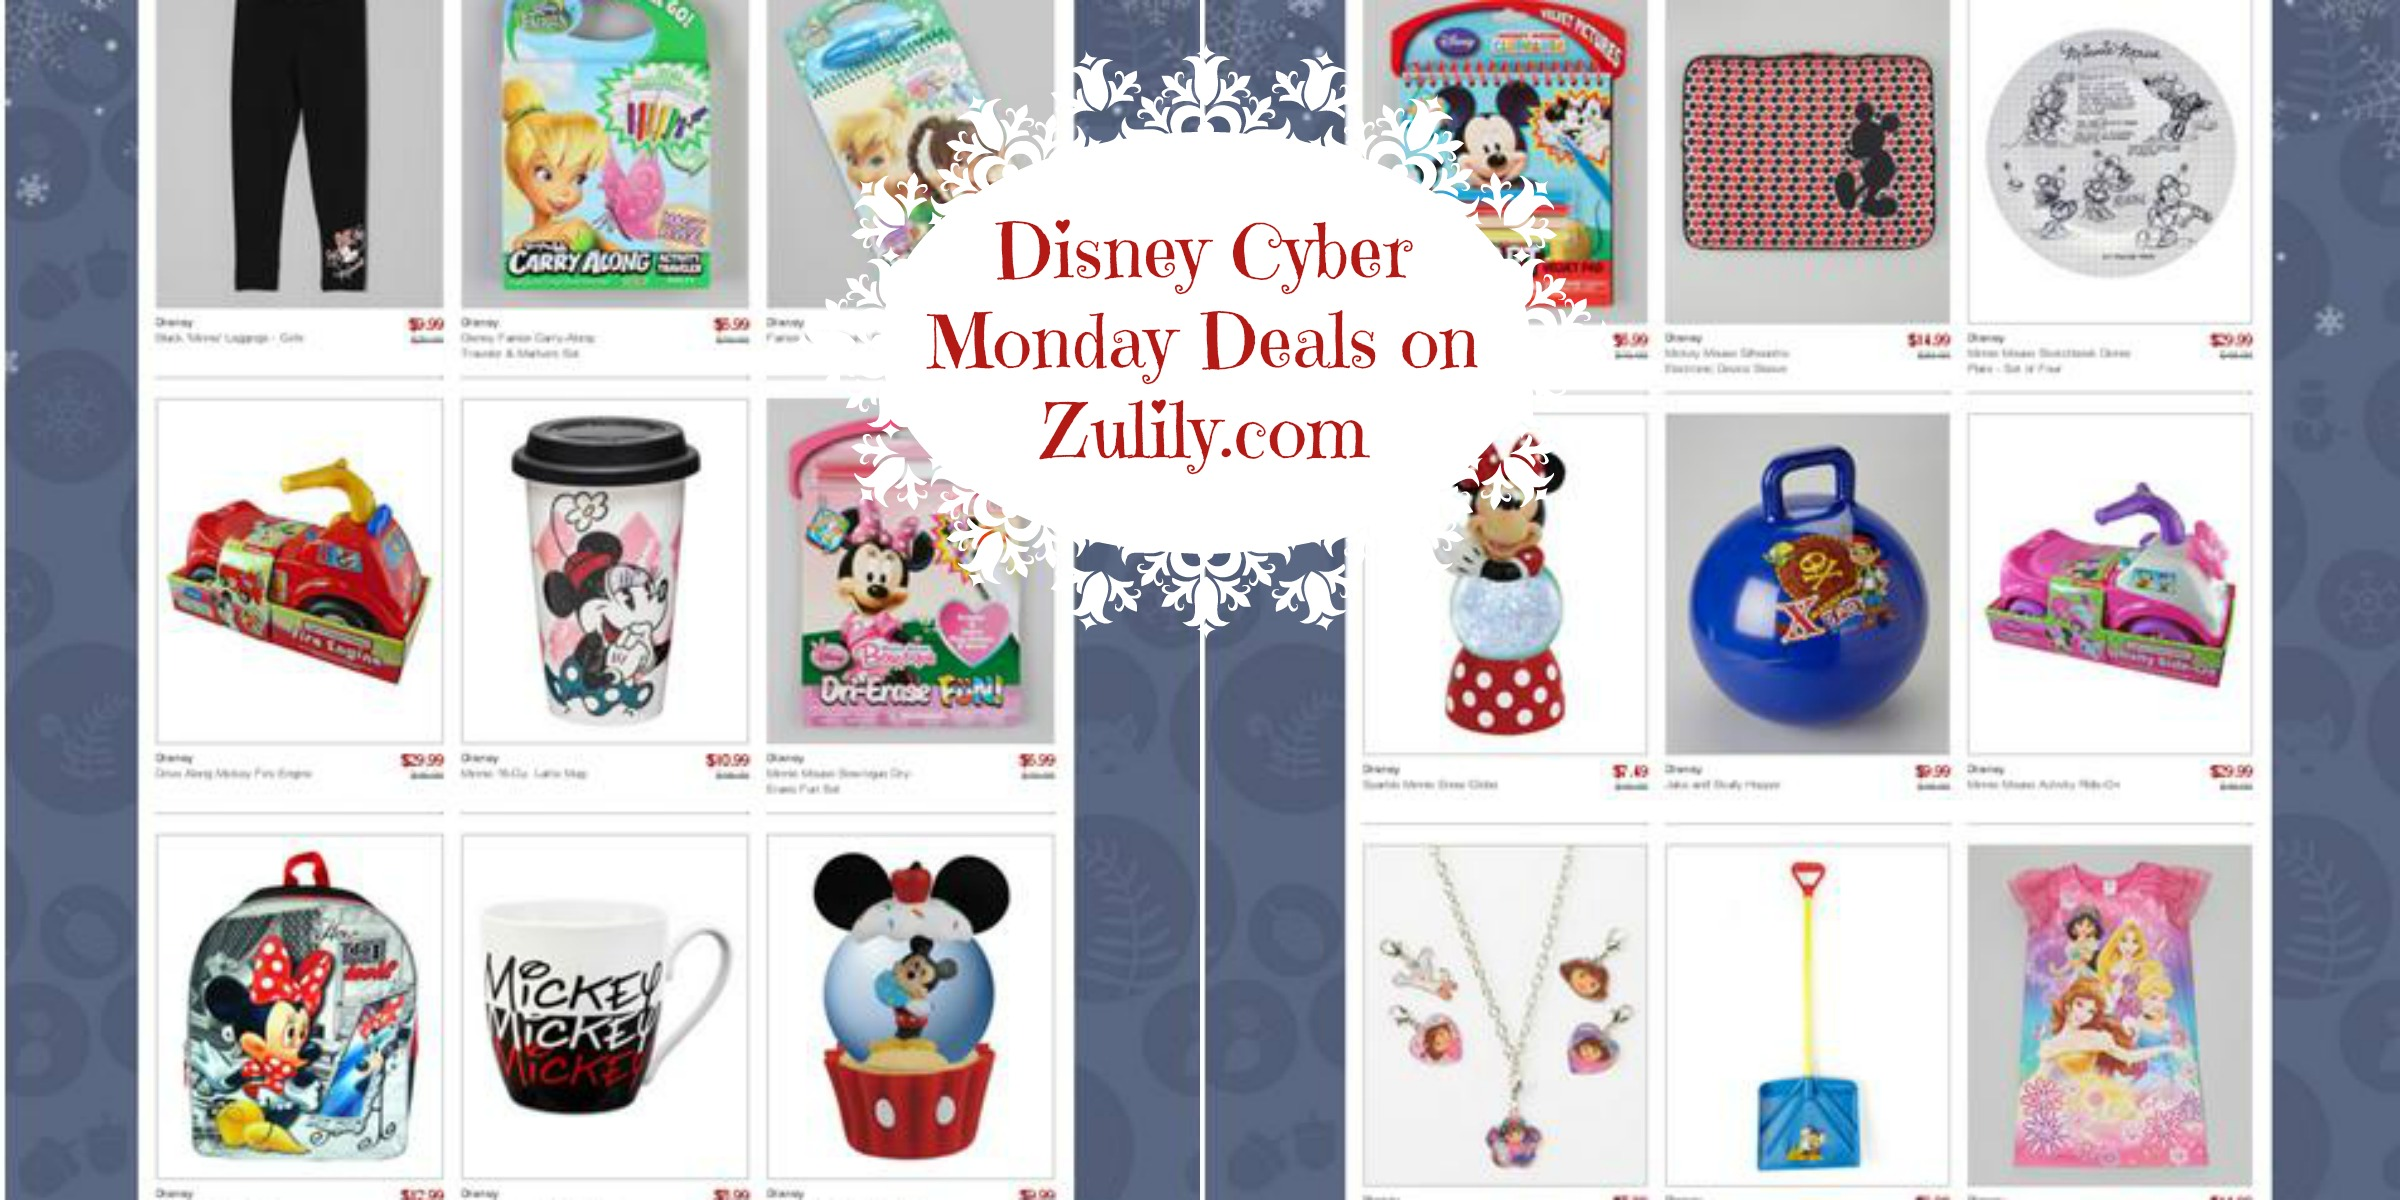 Great deals on Disney products over at Zulily.com!